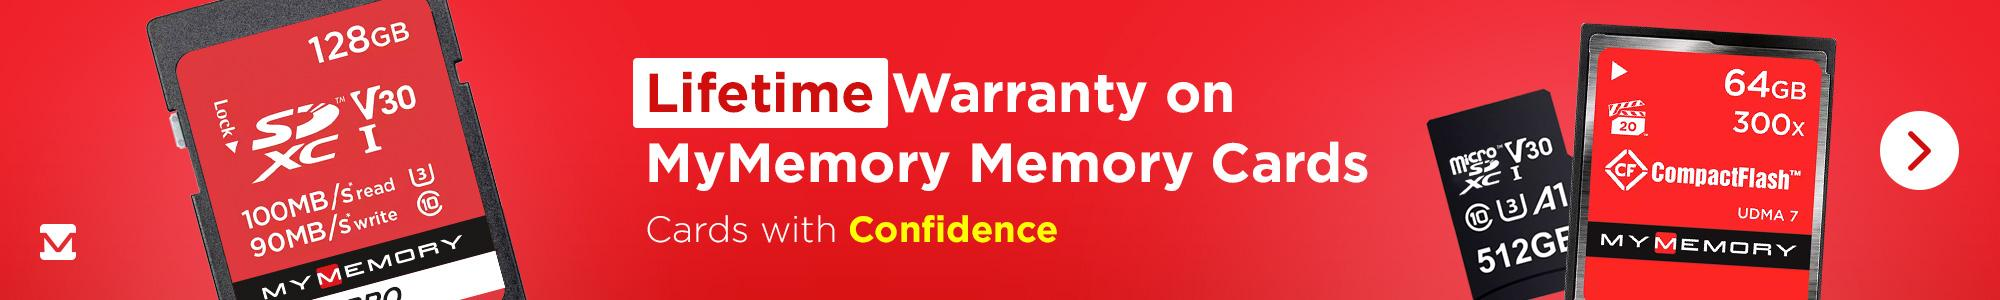 Lifetime Warranty on MyMemory Memory Cards! Cards with Confidence